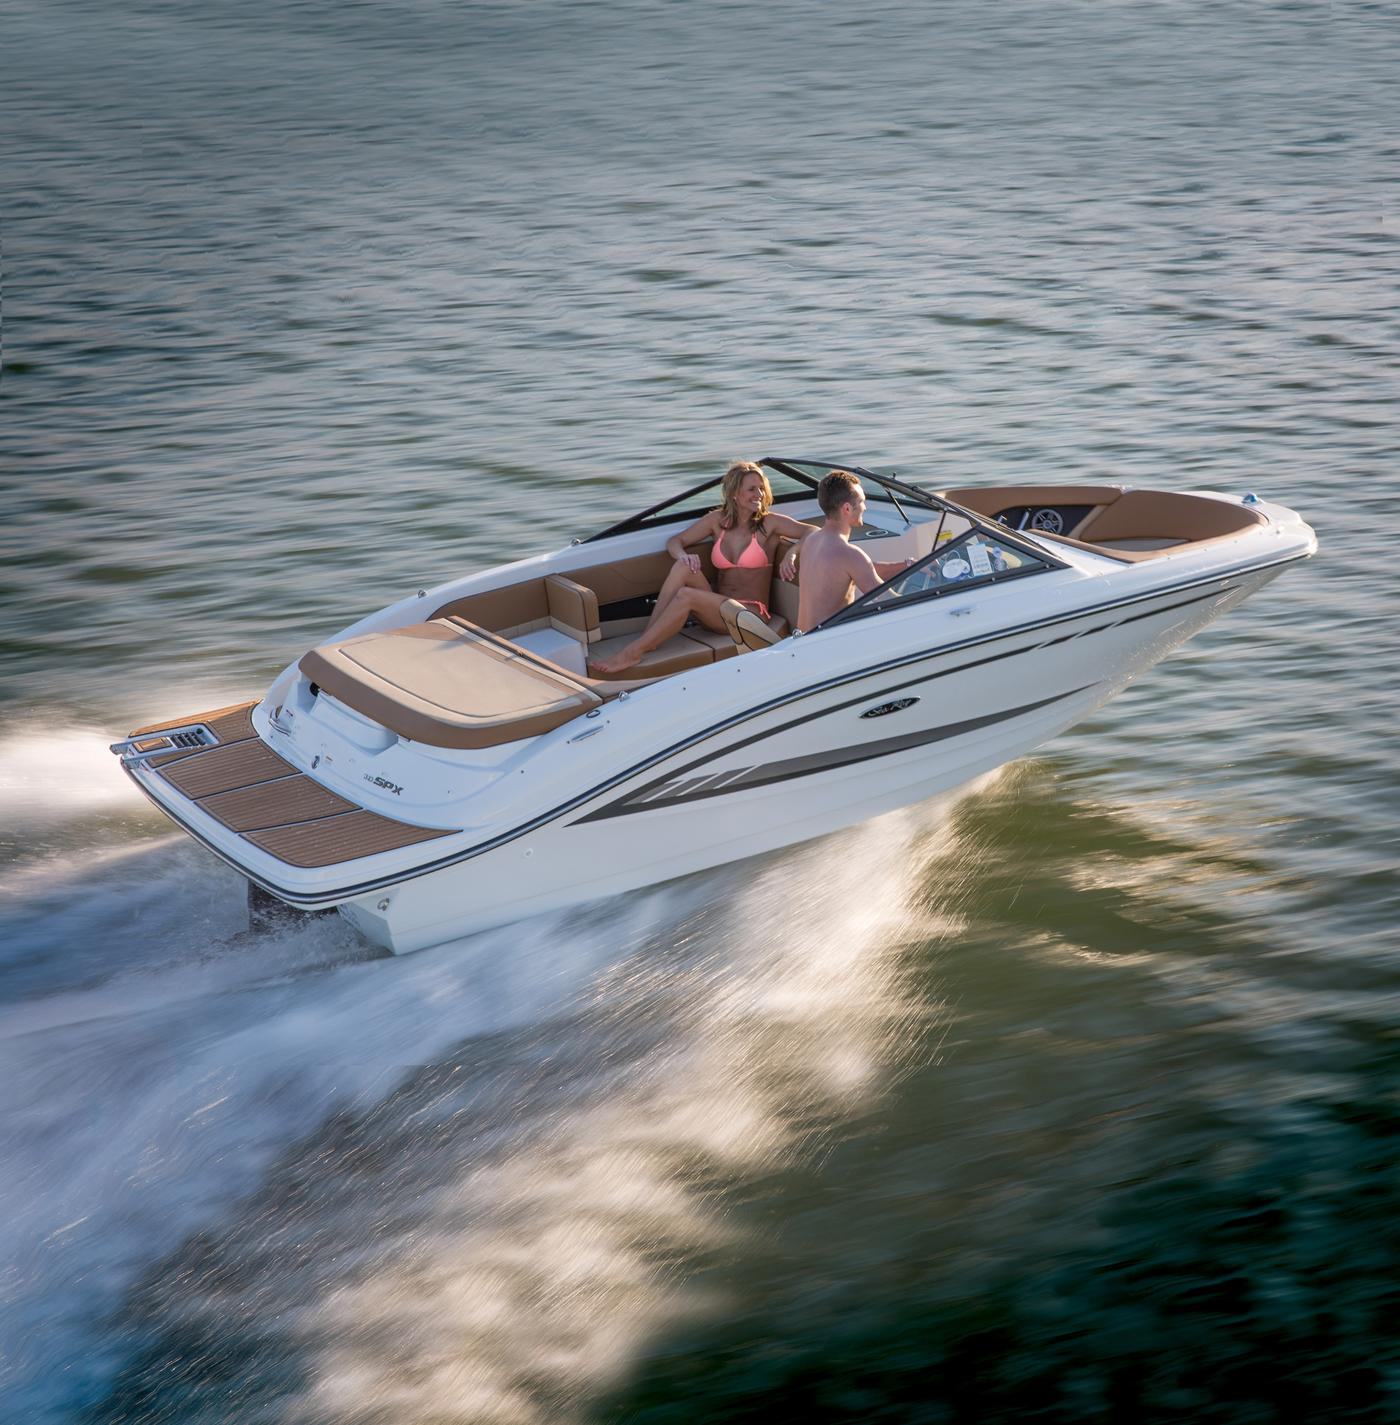 NEW 2019 Sea Ray 19 SPX - Hutchinson's Boat Works